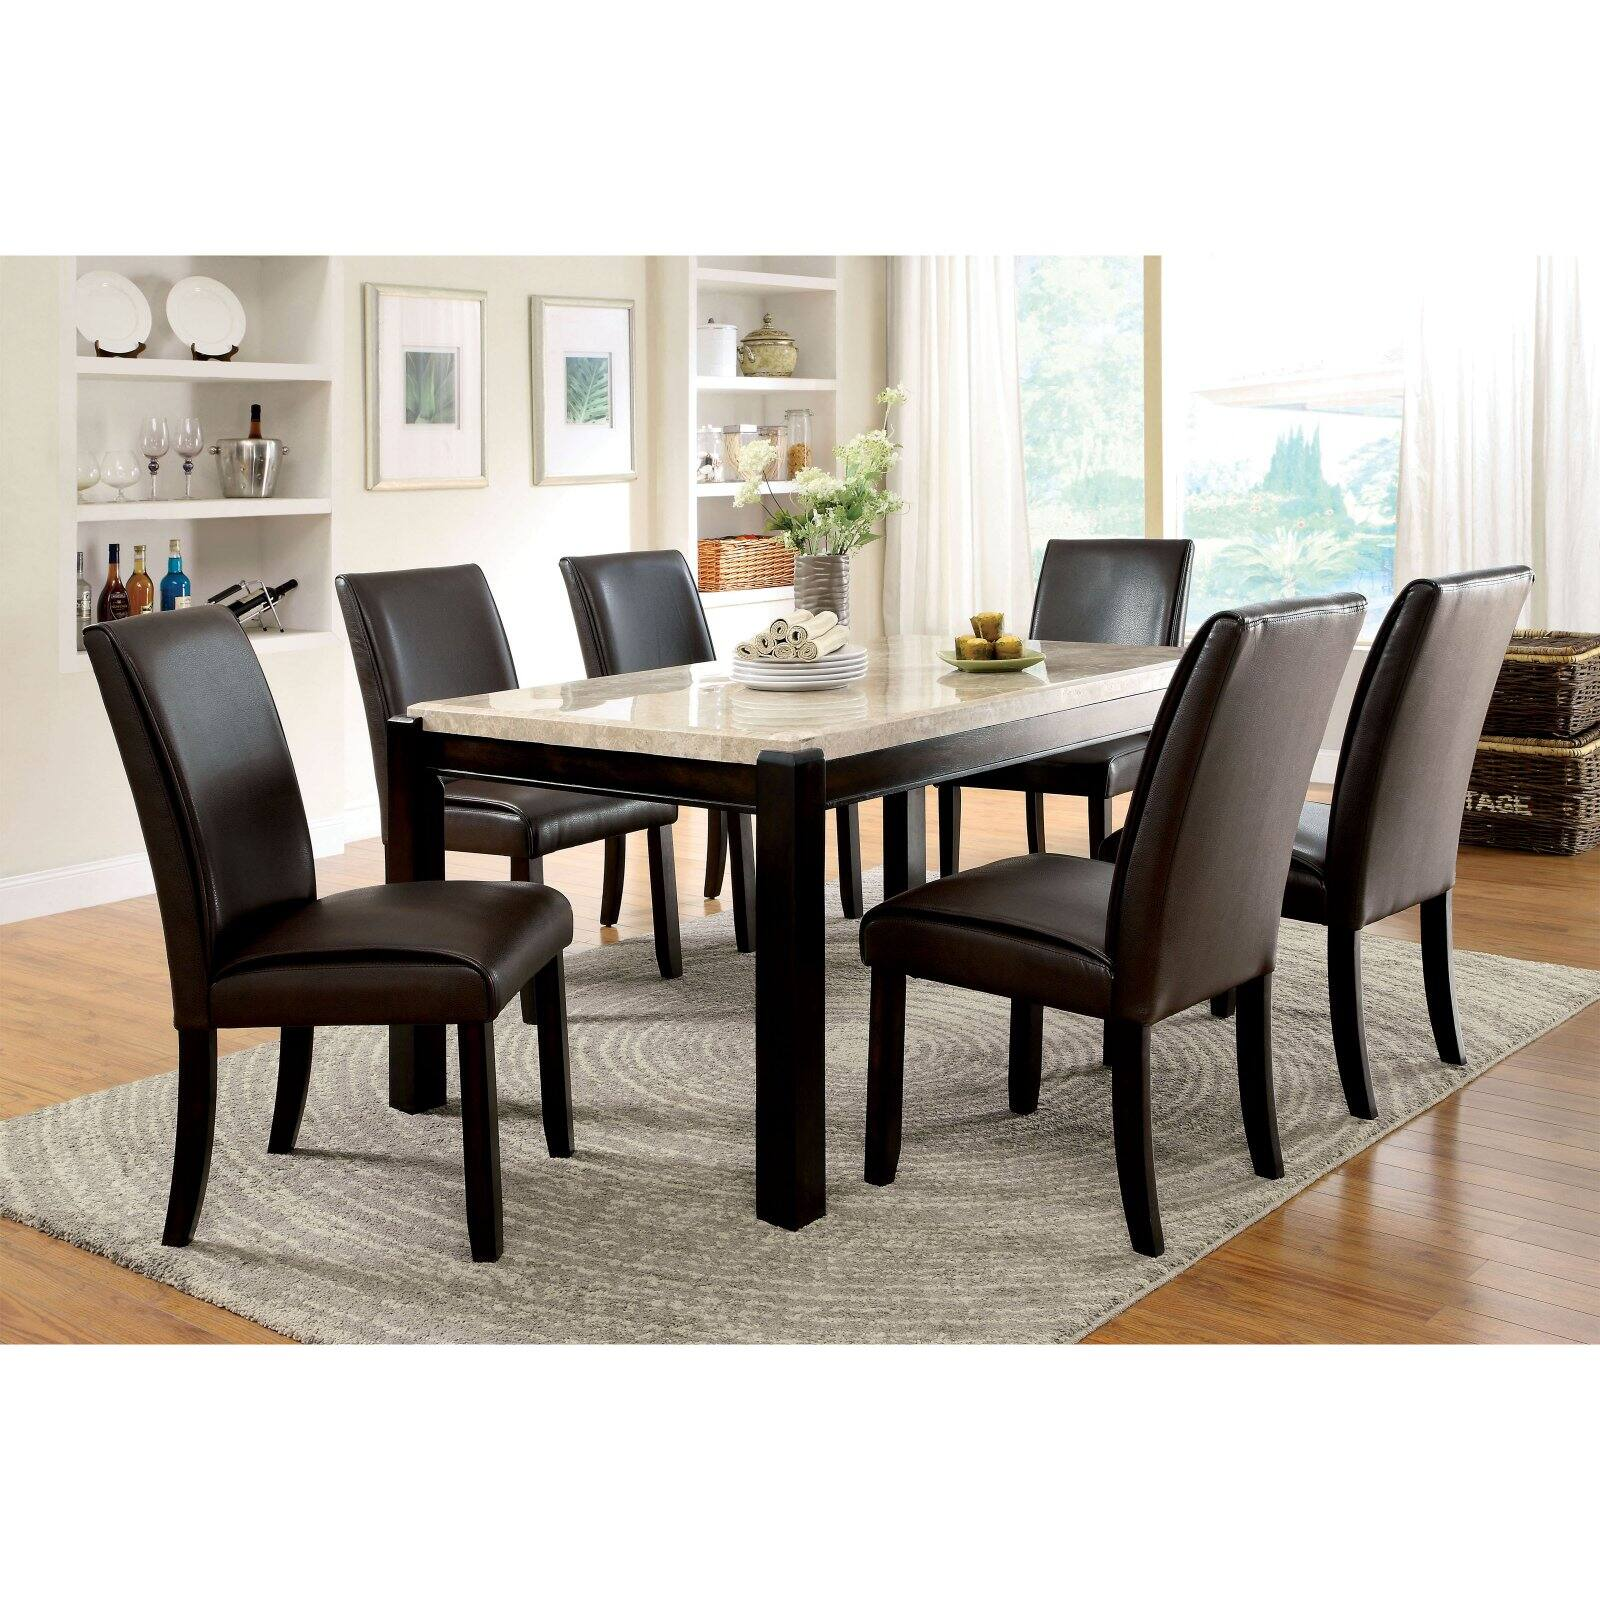 Furniture Of America Friedrich Modern 7 Piece Marble Dining Table Set Walmart Com Walmart Com